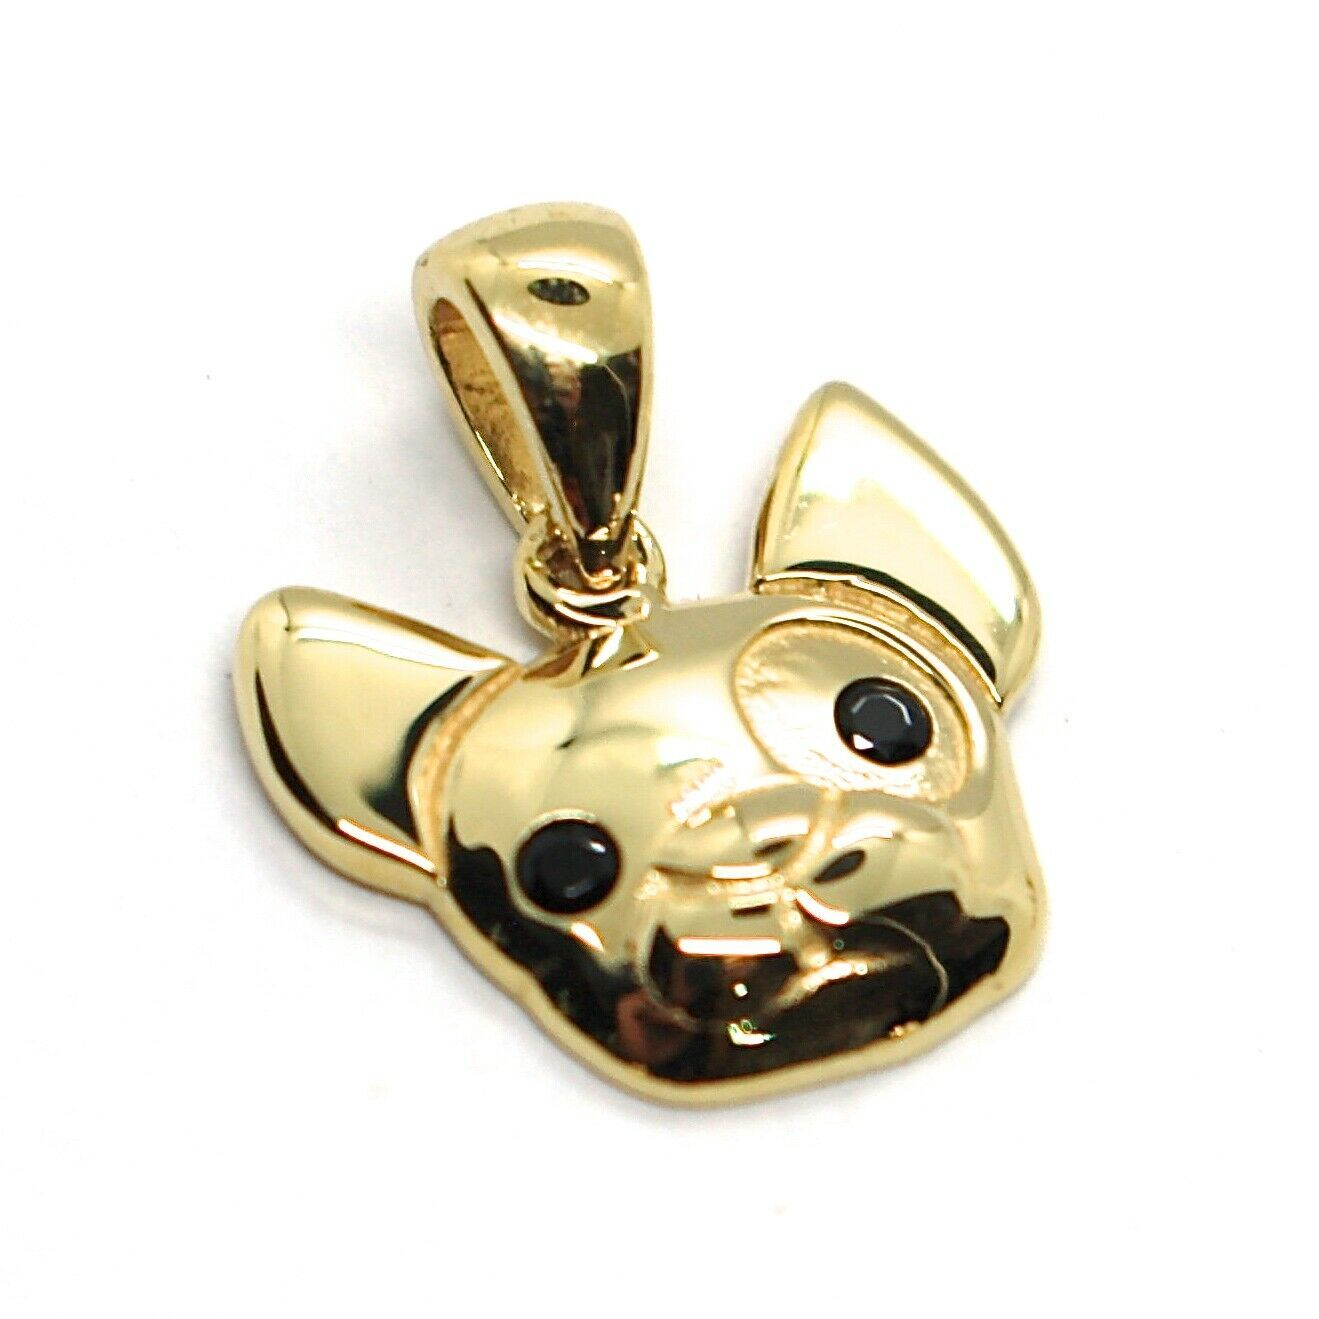 Yellow Gold Pendant 750 18K, Pendant, Dog, French Bulldog, Zircon Black